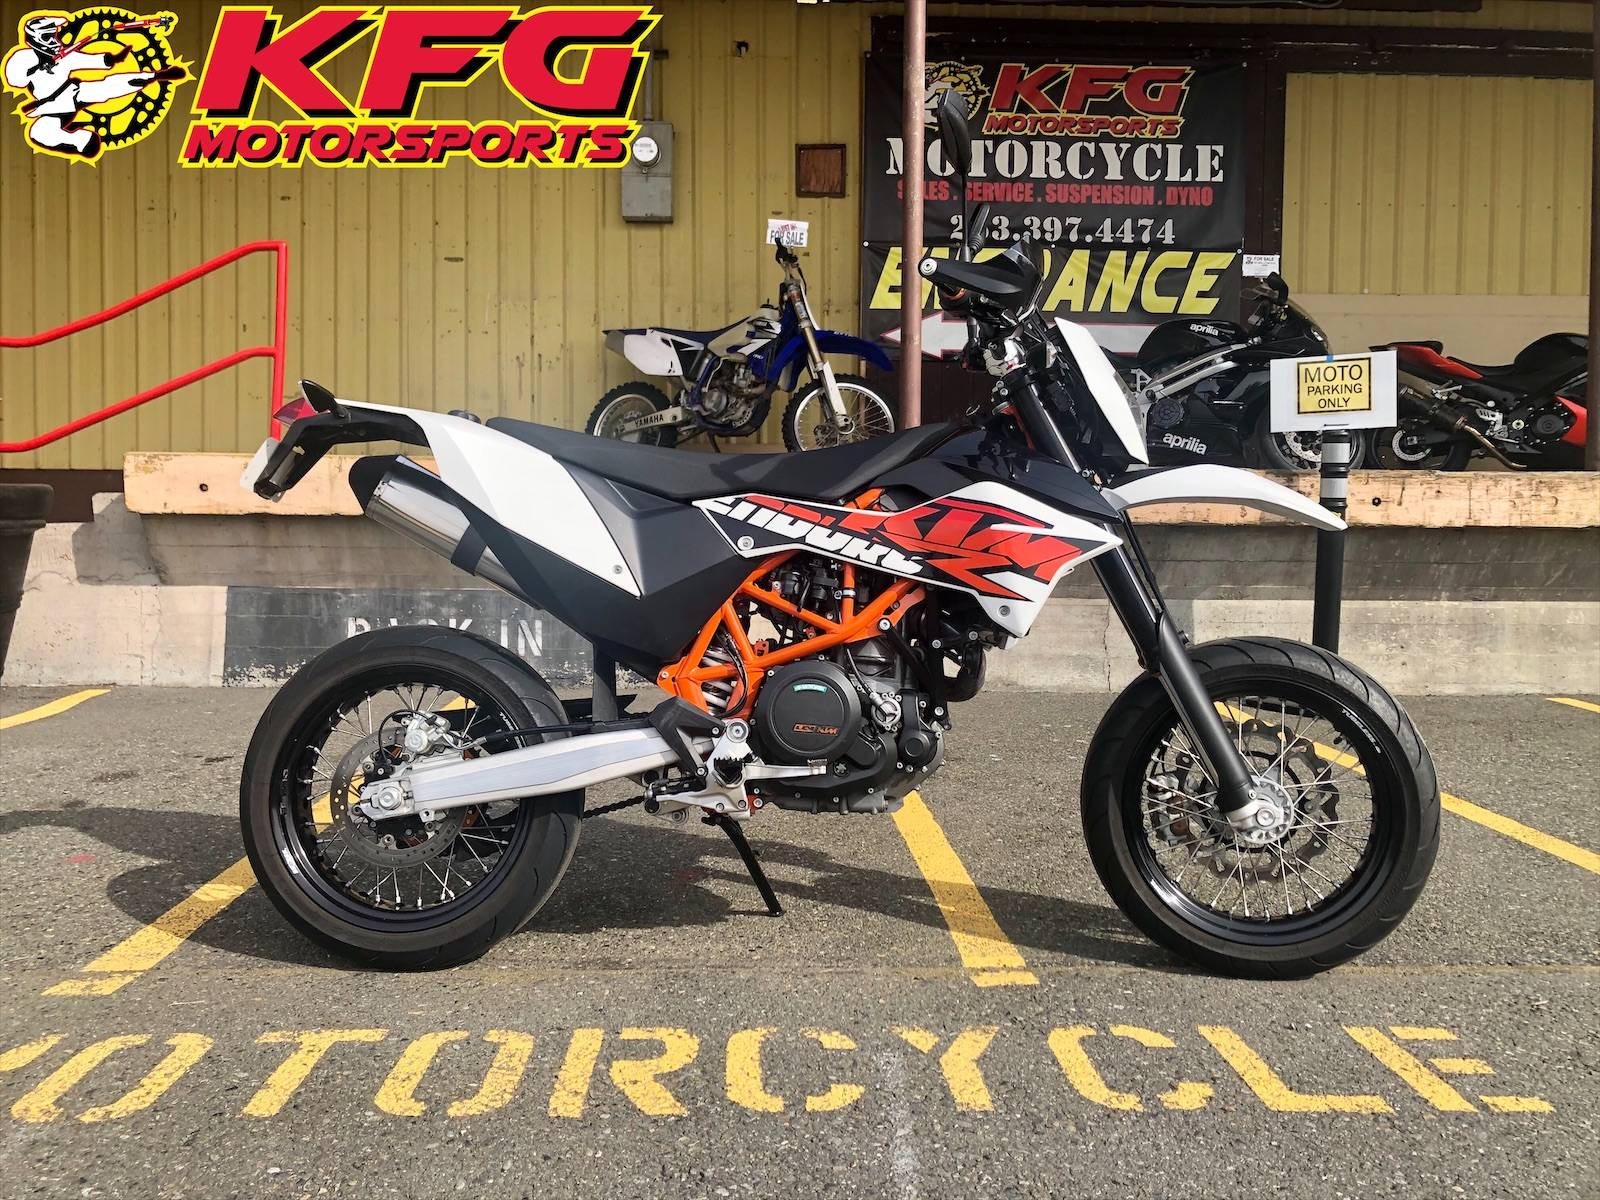 2015 KTM 690 Enduro R in Auburn, Washington - Photo 1